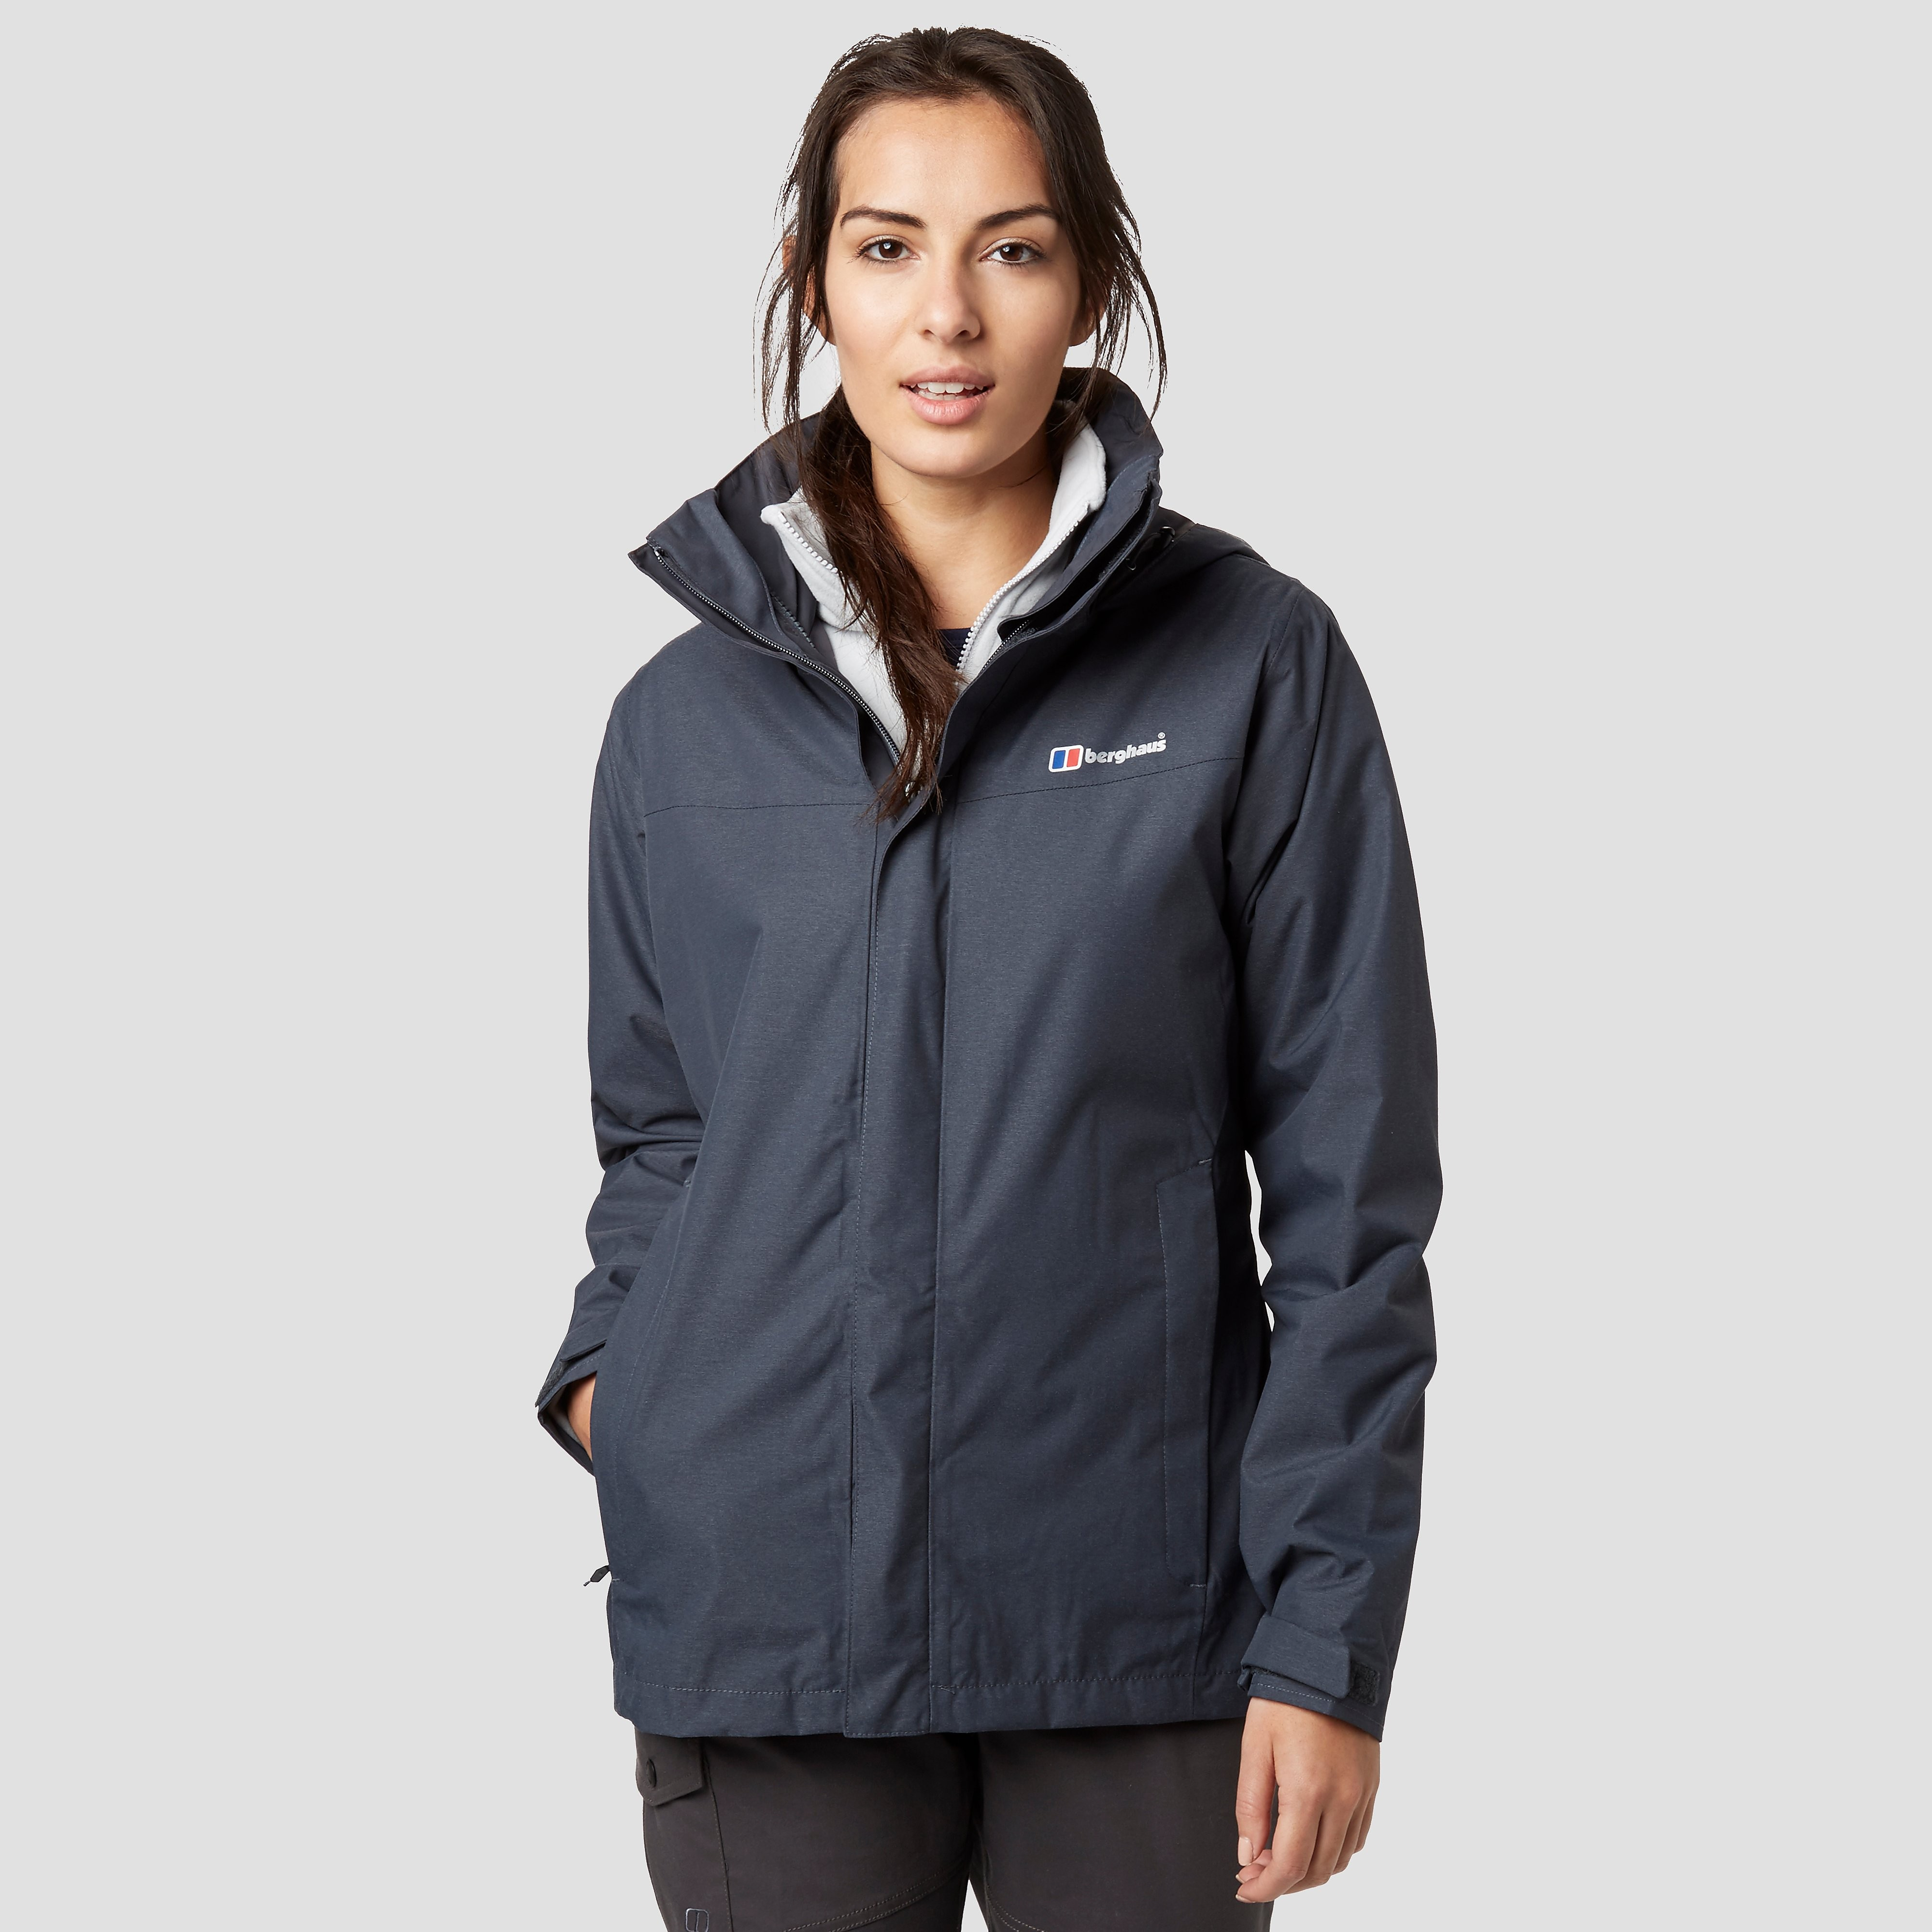 Berghaus Woemn's Howtown 3 in 1 Waterproof Jacket